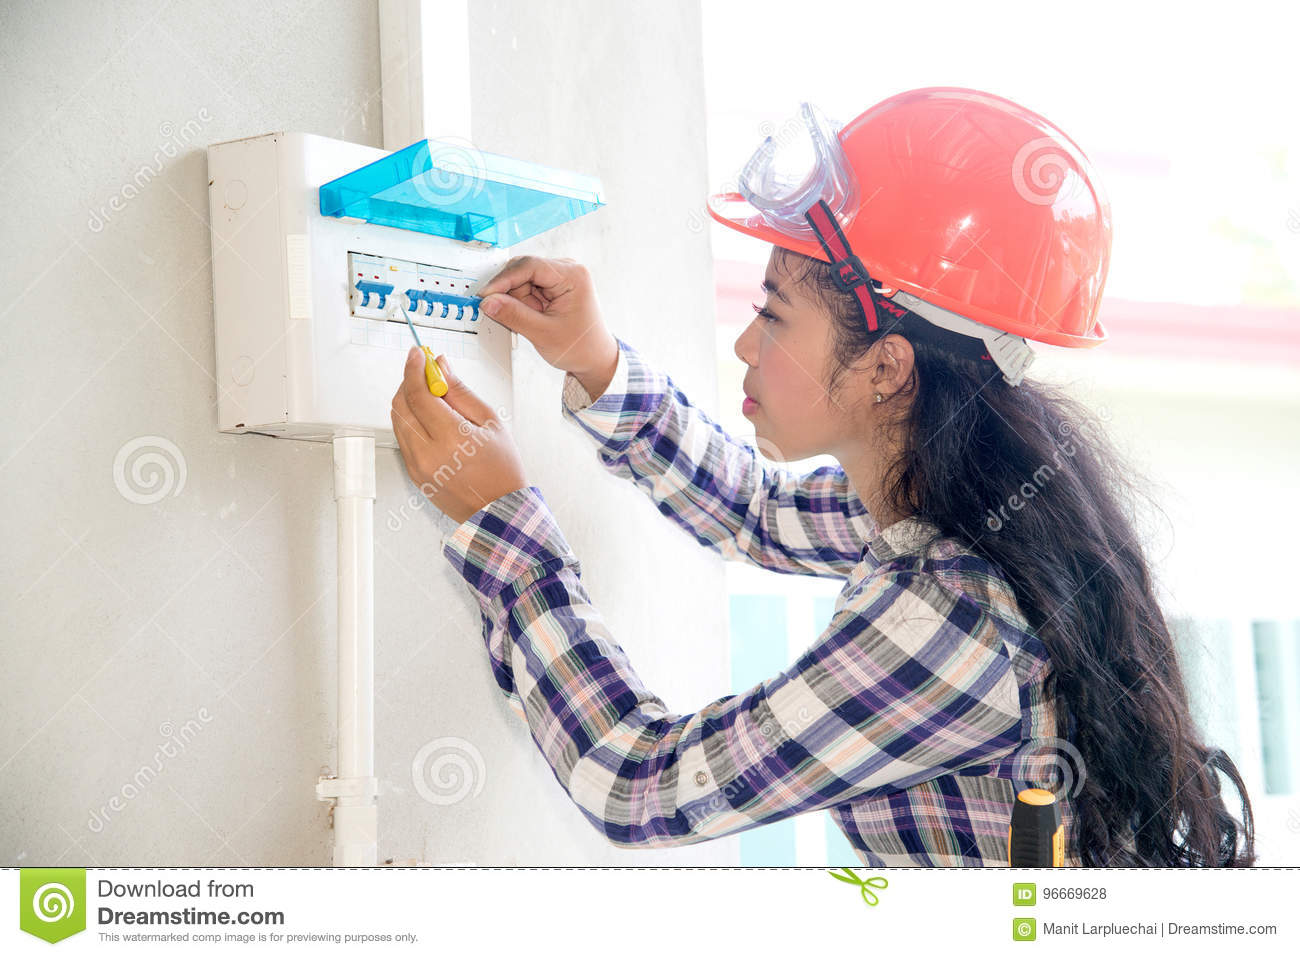 Asian female Electrician or Engineer check or Inspect Electrical system circuit Breaker.